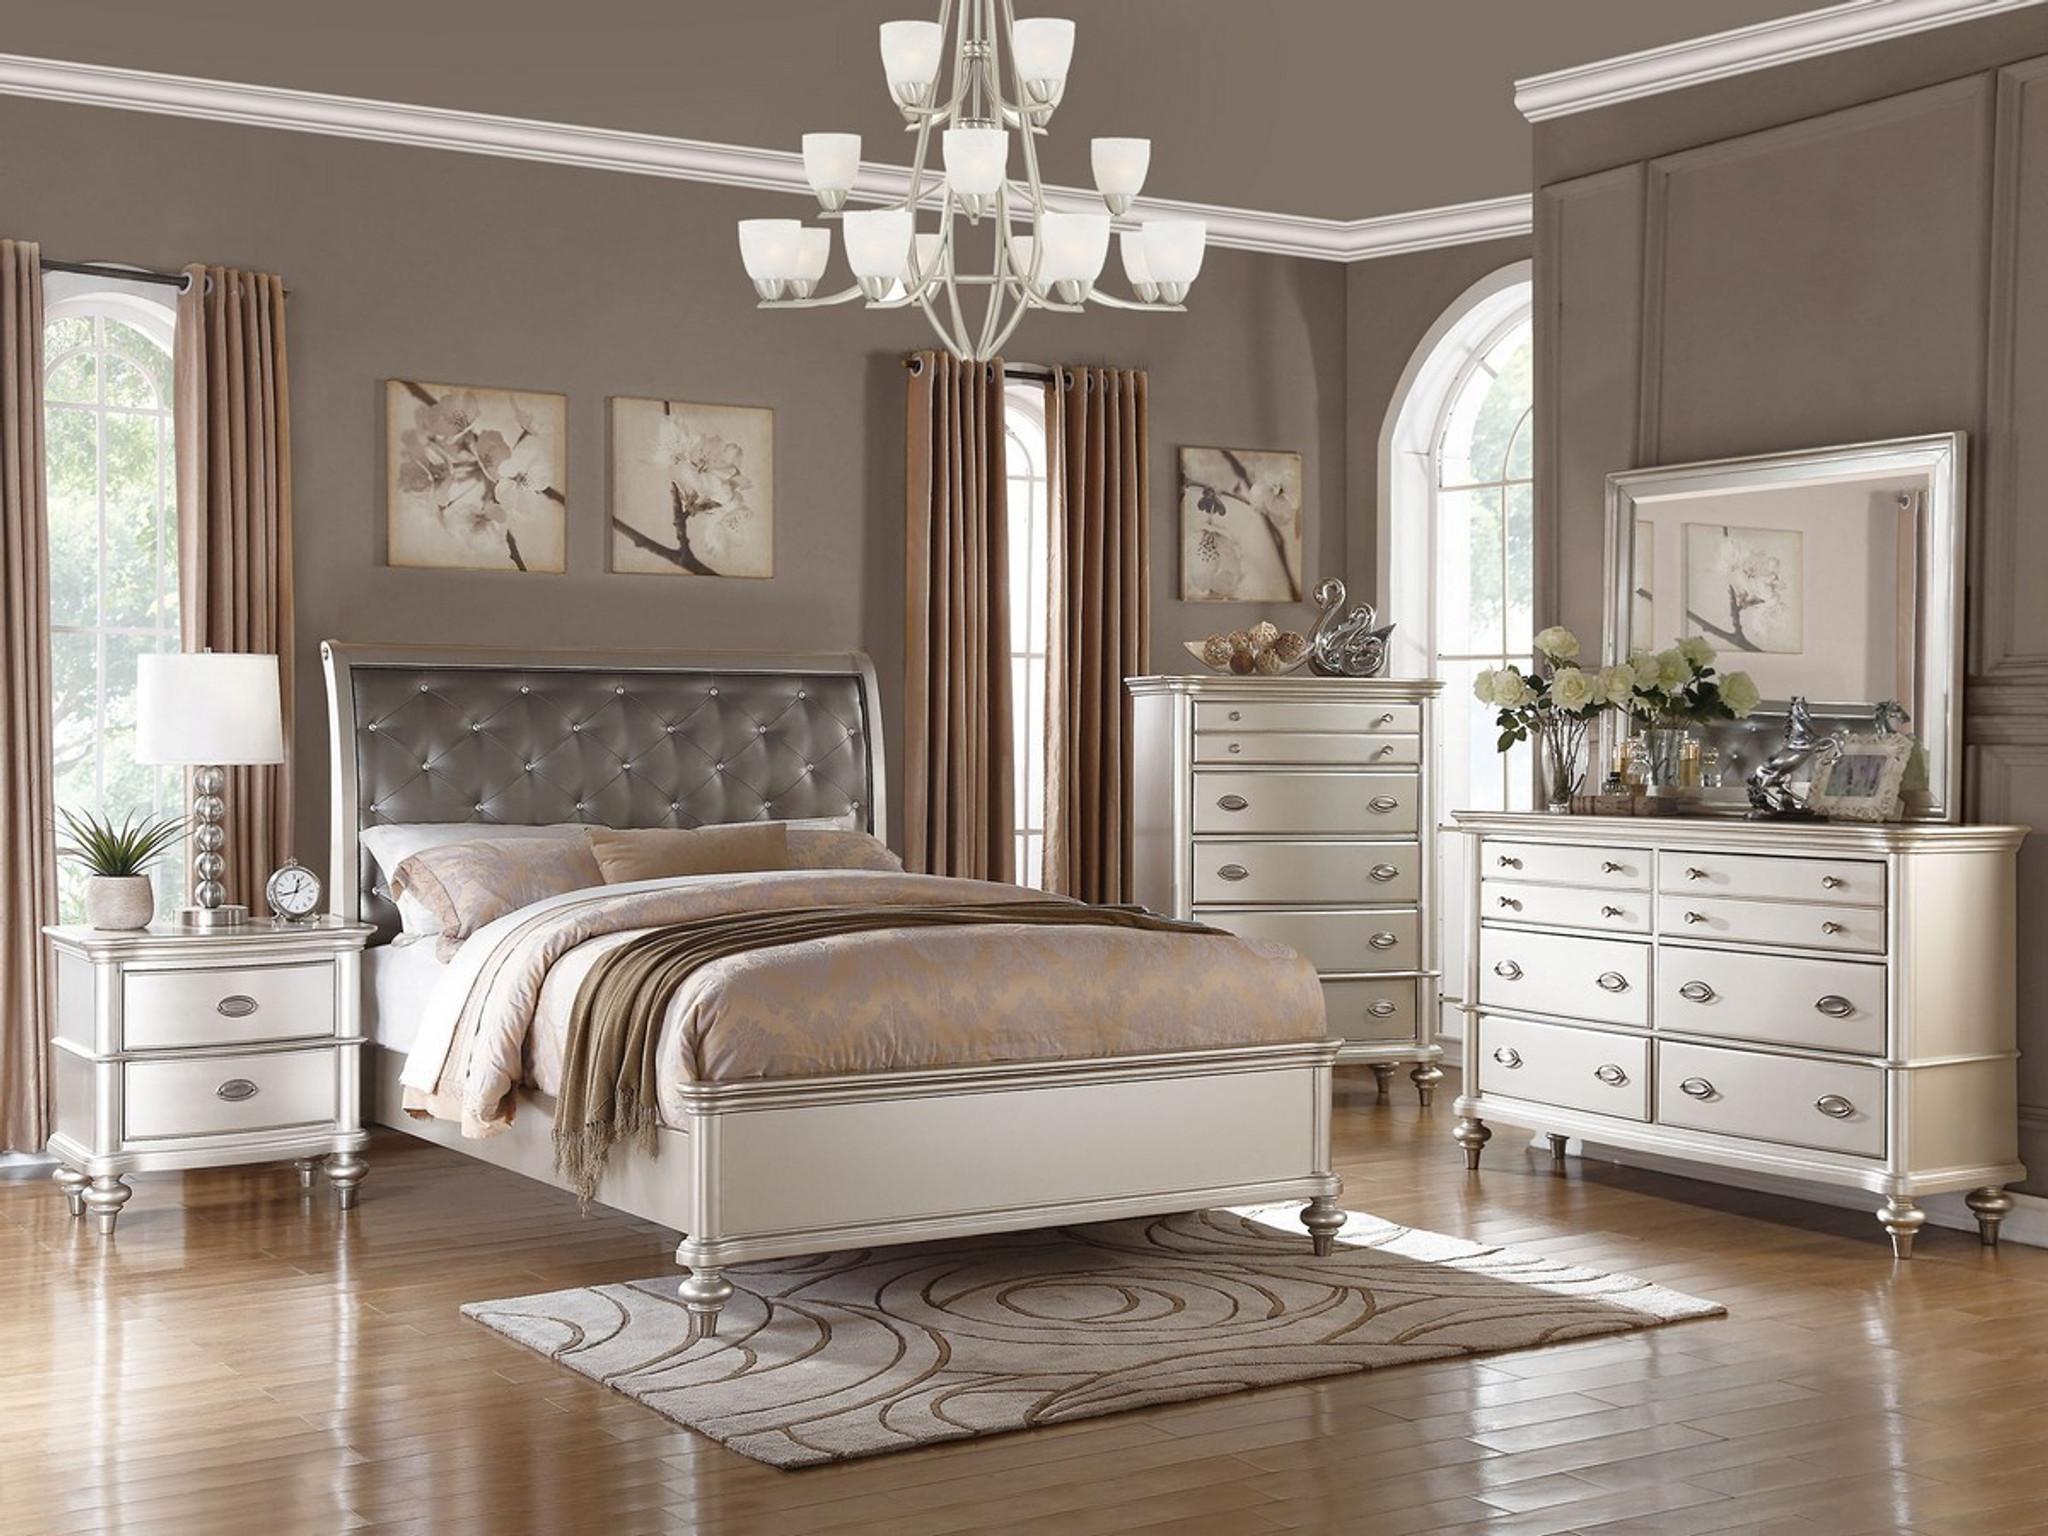 ANTIQUE SILVER BED FRAME WITH UPLHOLSTERED HEADBOARD AND TUFTING ACCENT - KASSA MALL HOME FURNITURE - F9317 - ANTIQUE SILVER BED FRAME WITH